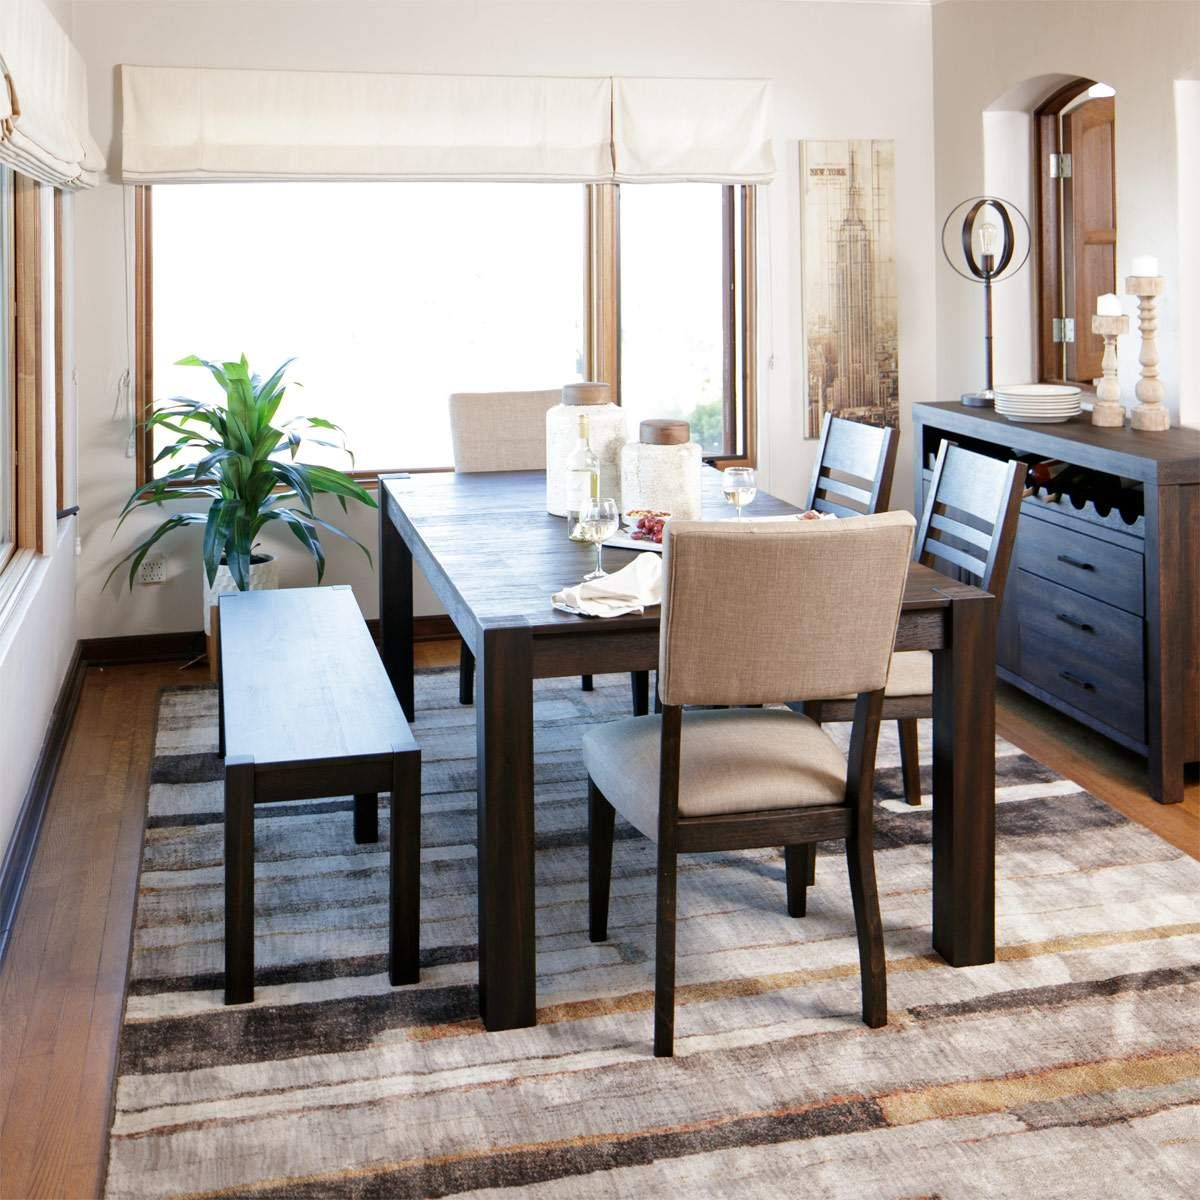 The Acacia dining set named after the